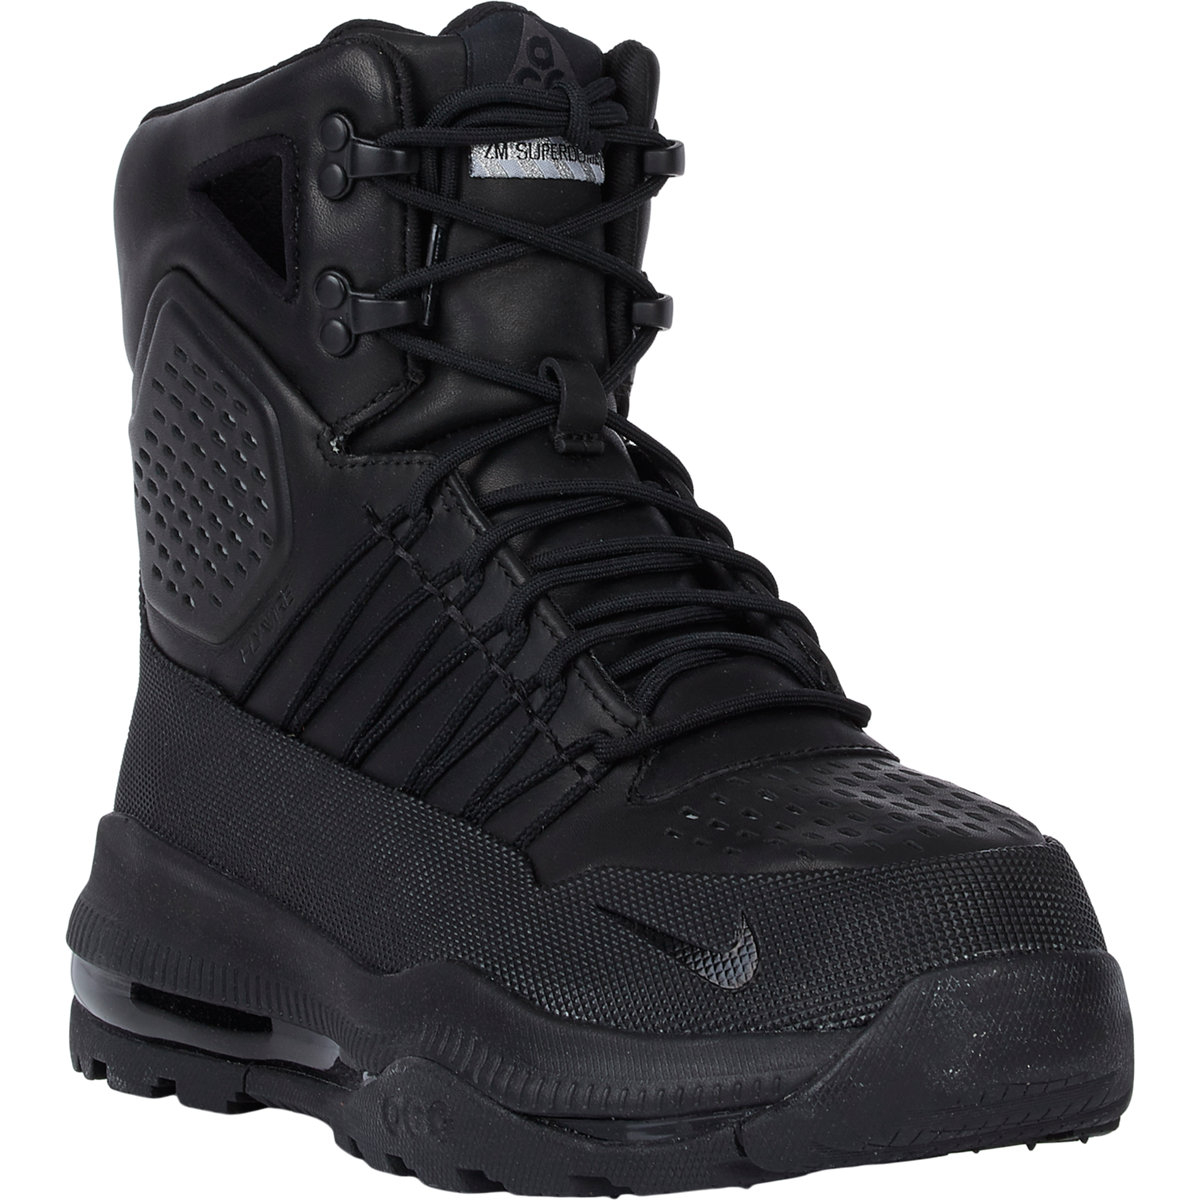 296af49de8d2 Lyst - Nike Zoom Superdome Boots in Black for Men